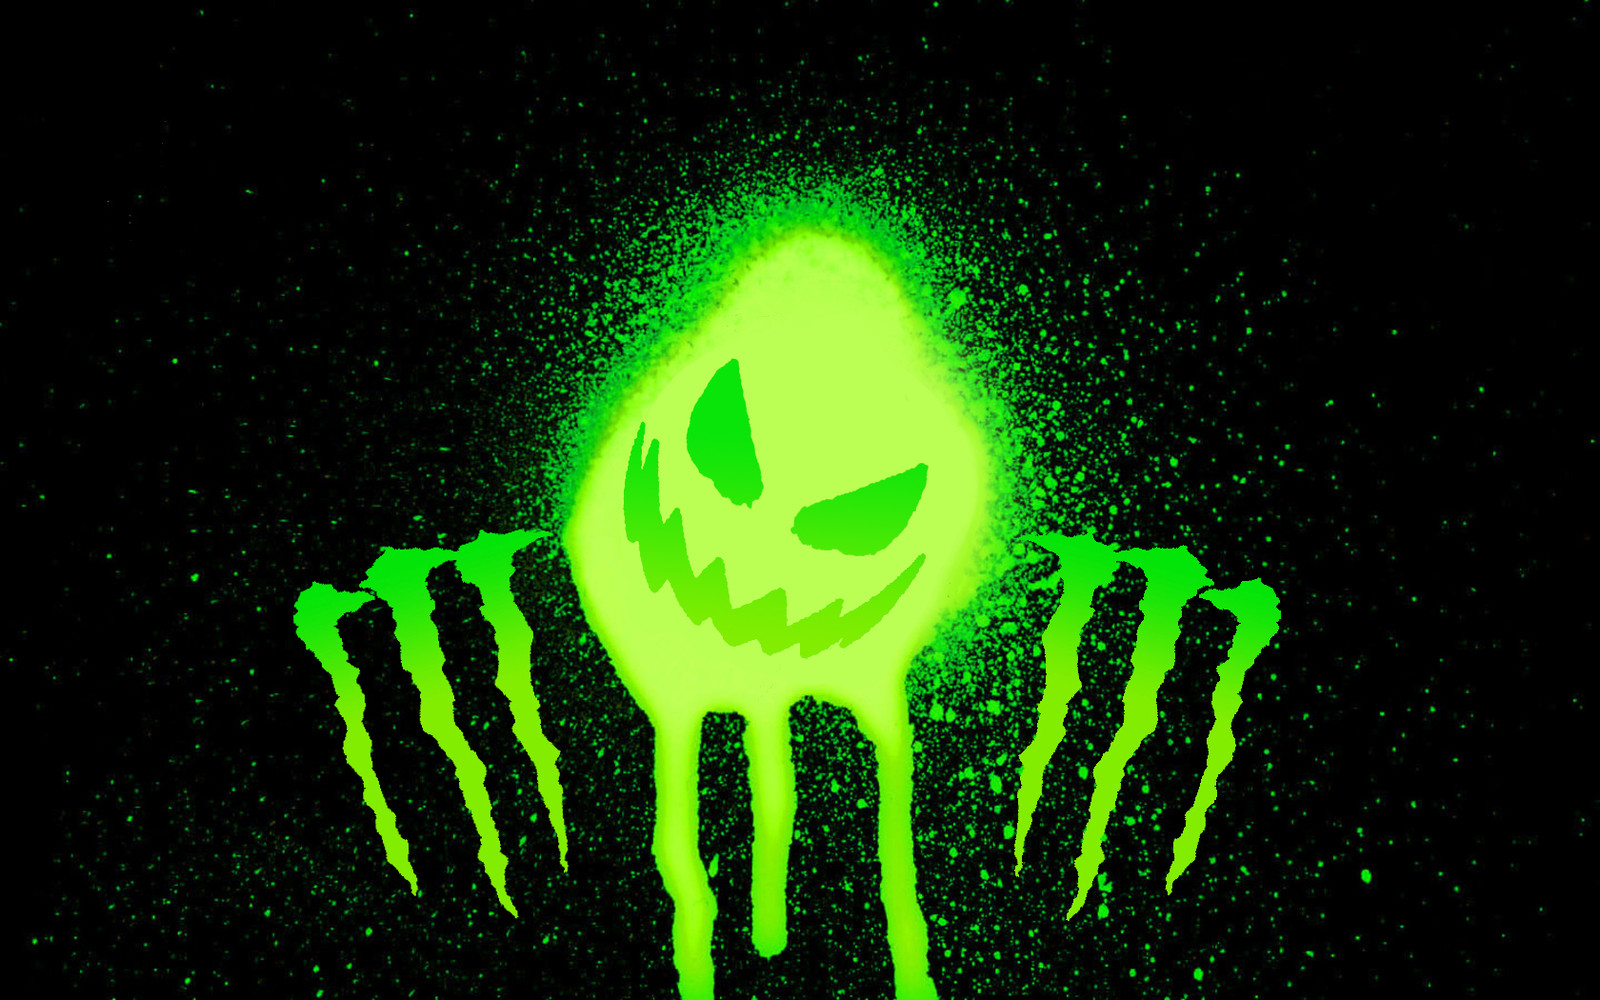 Monsterenergymonster